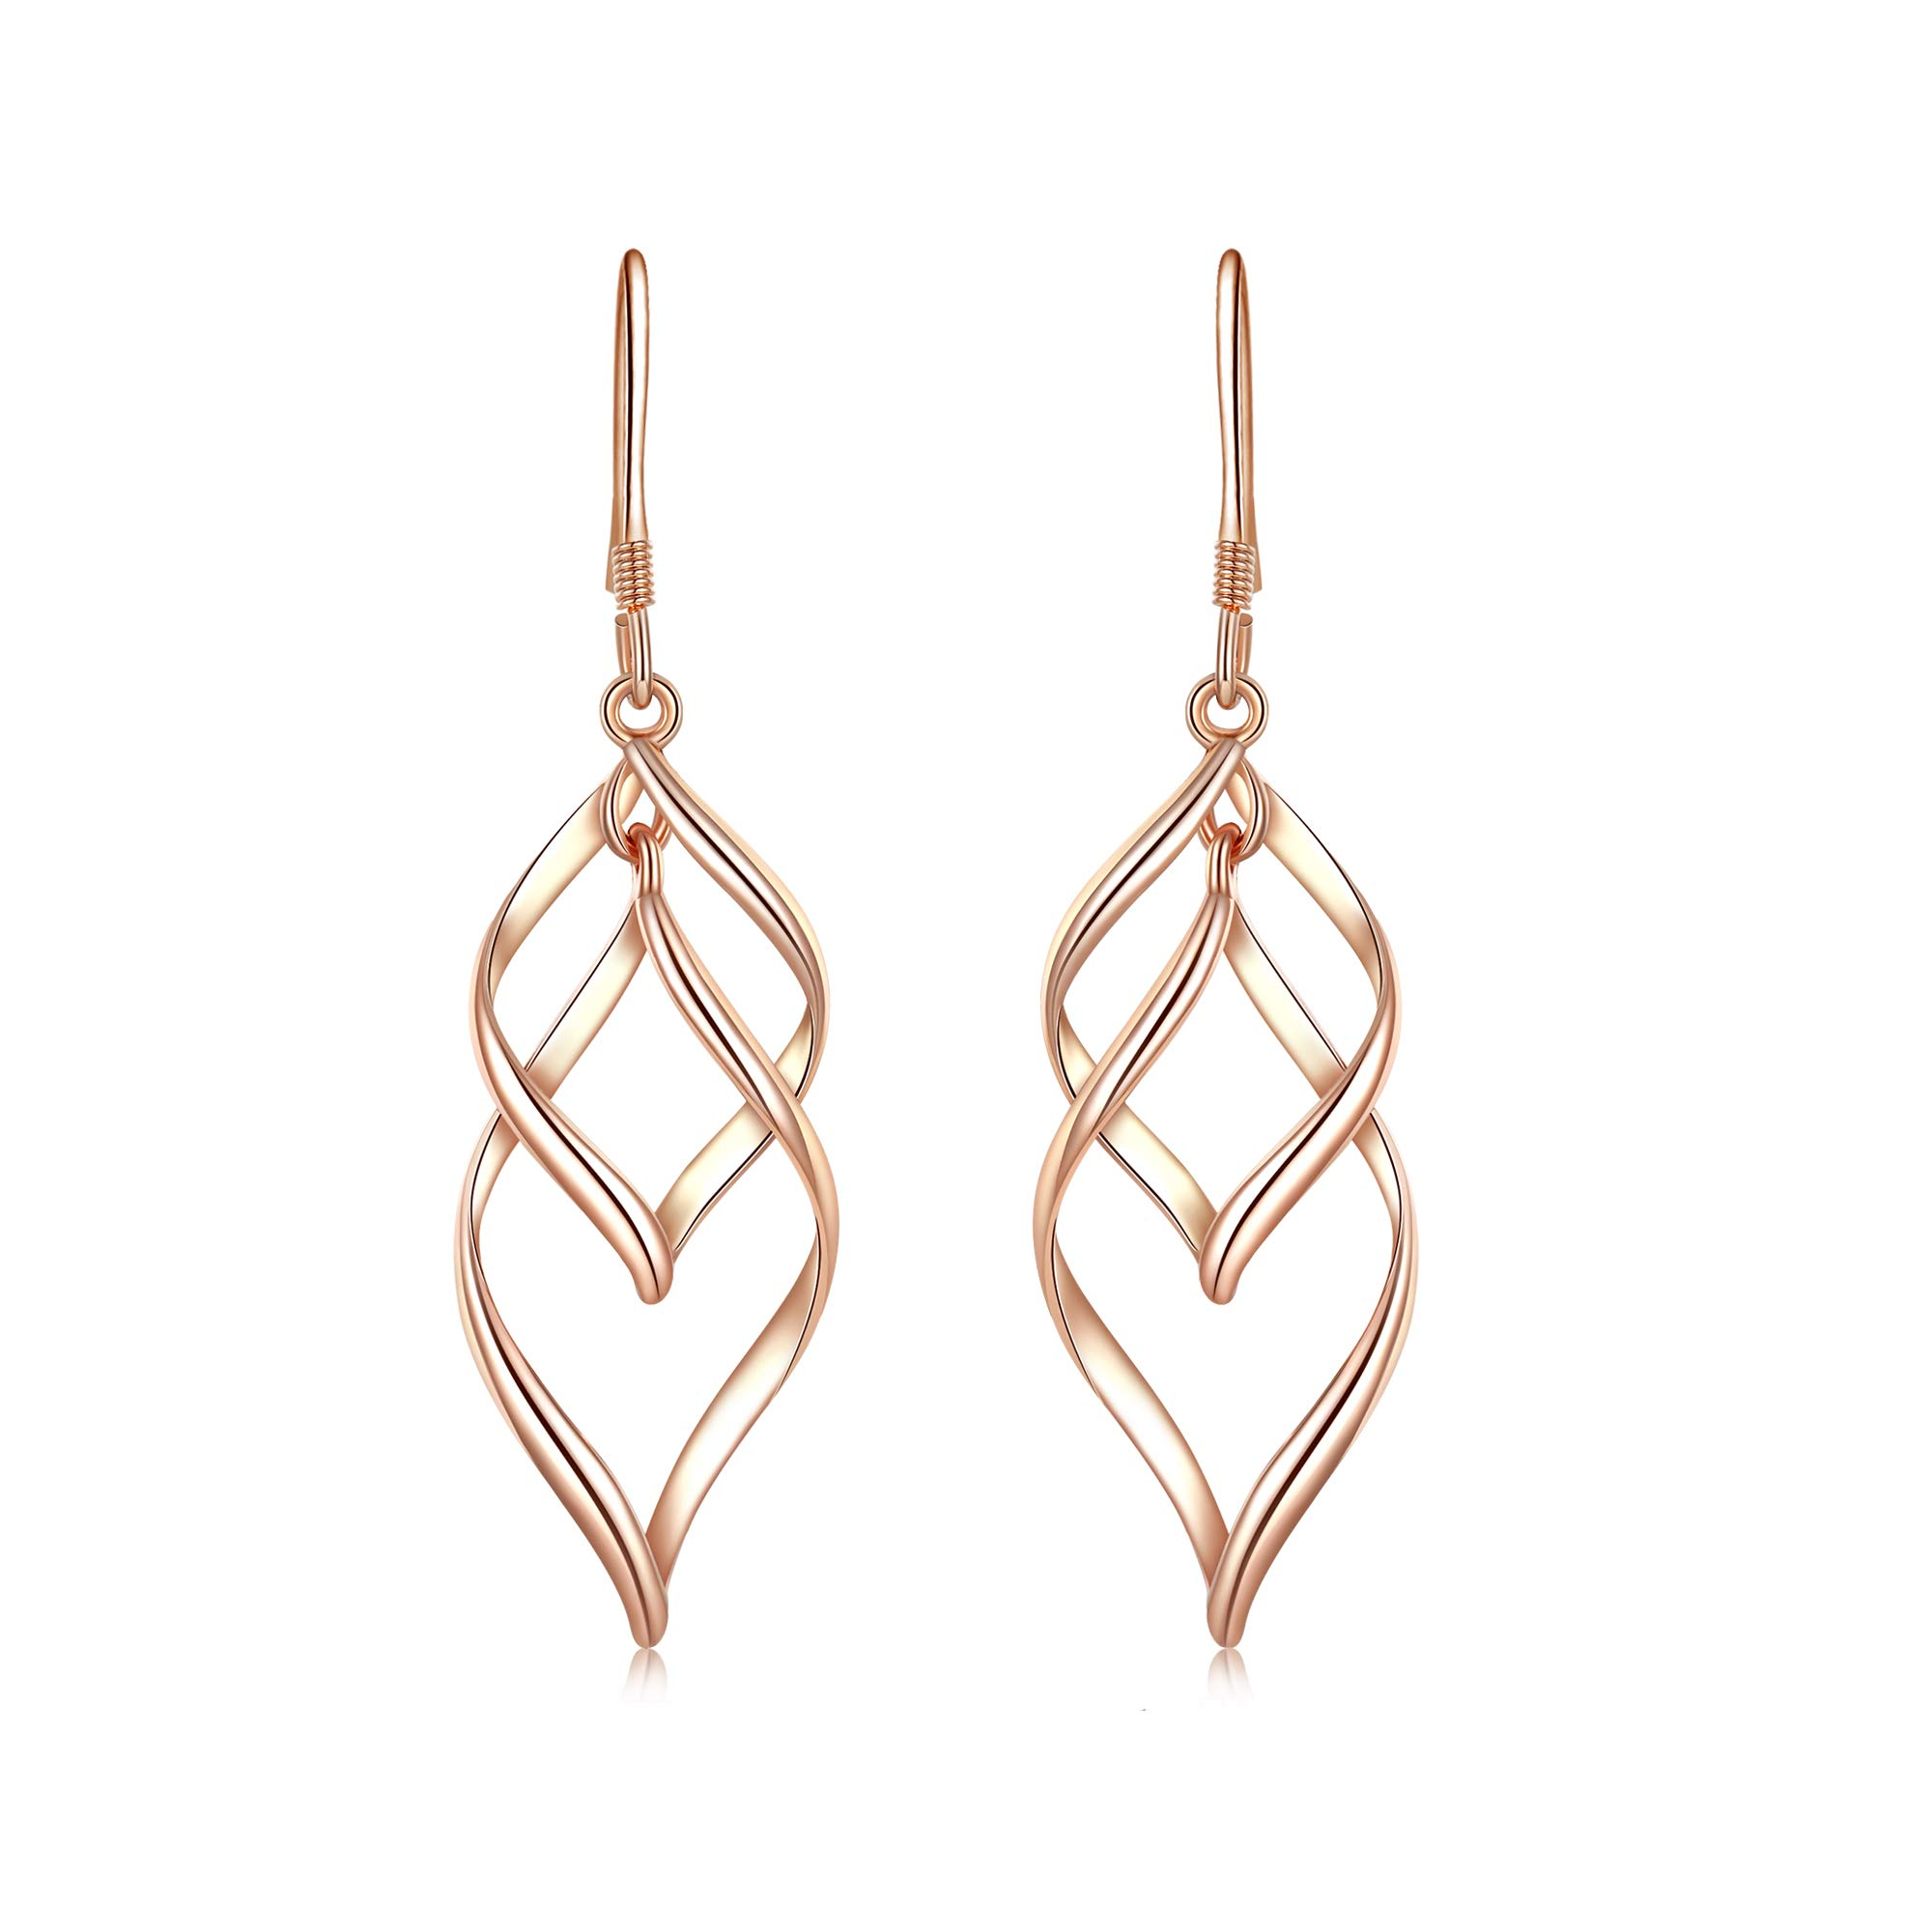 Desimtion Rose Gold Plated Classic Twist Wave Hypoallergenic Earrings,Sterling Silver Post Dangle Earrings for Women by DESIMTION